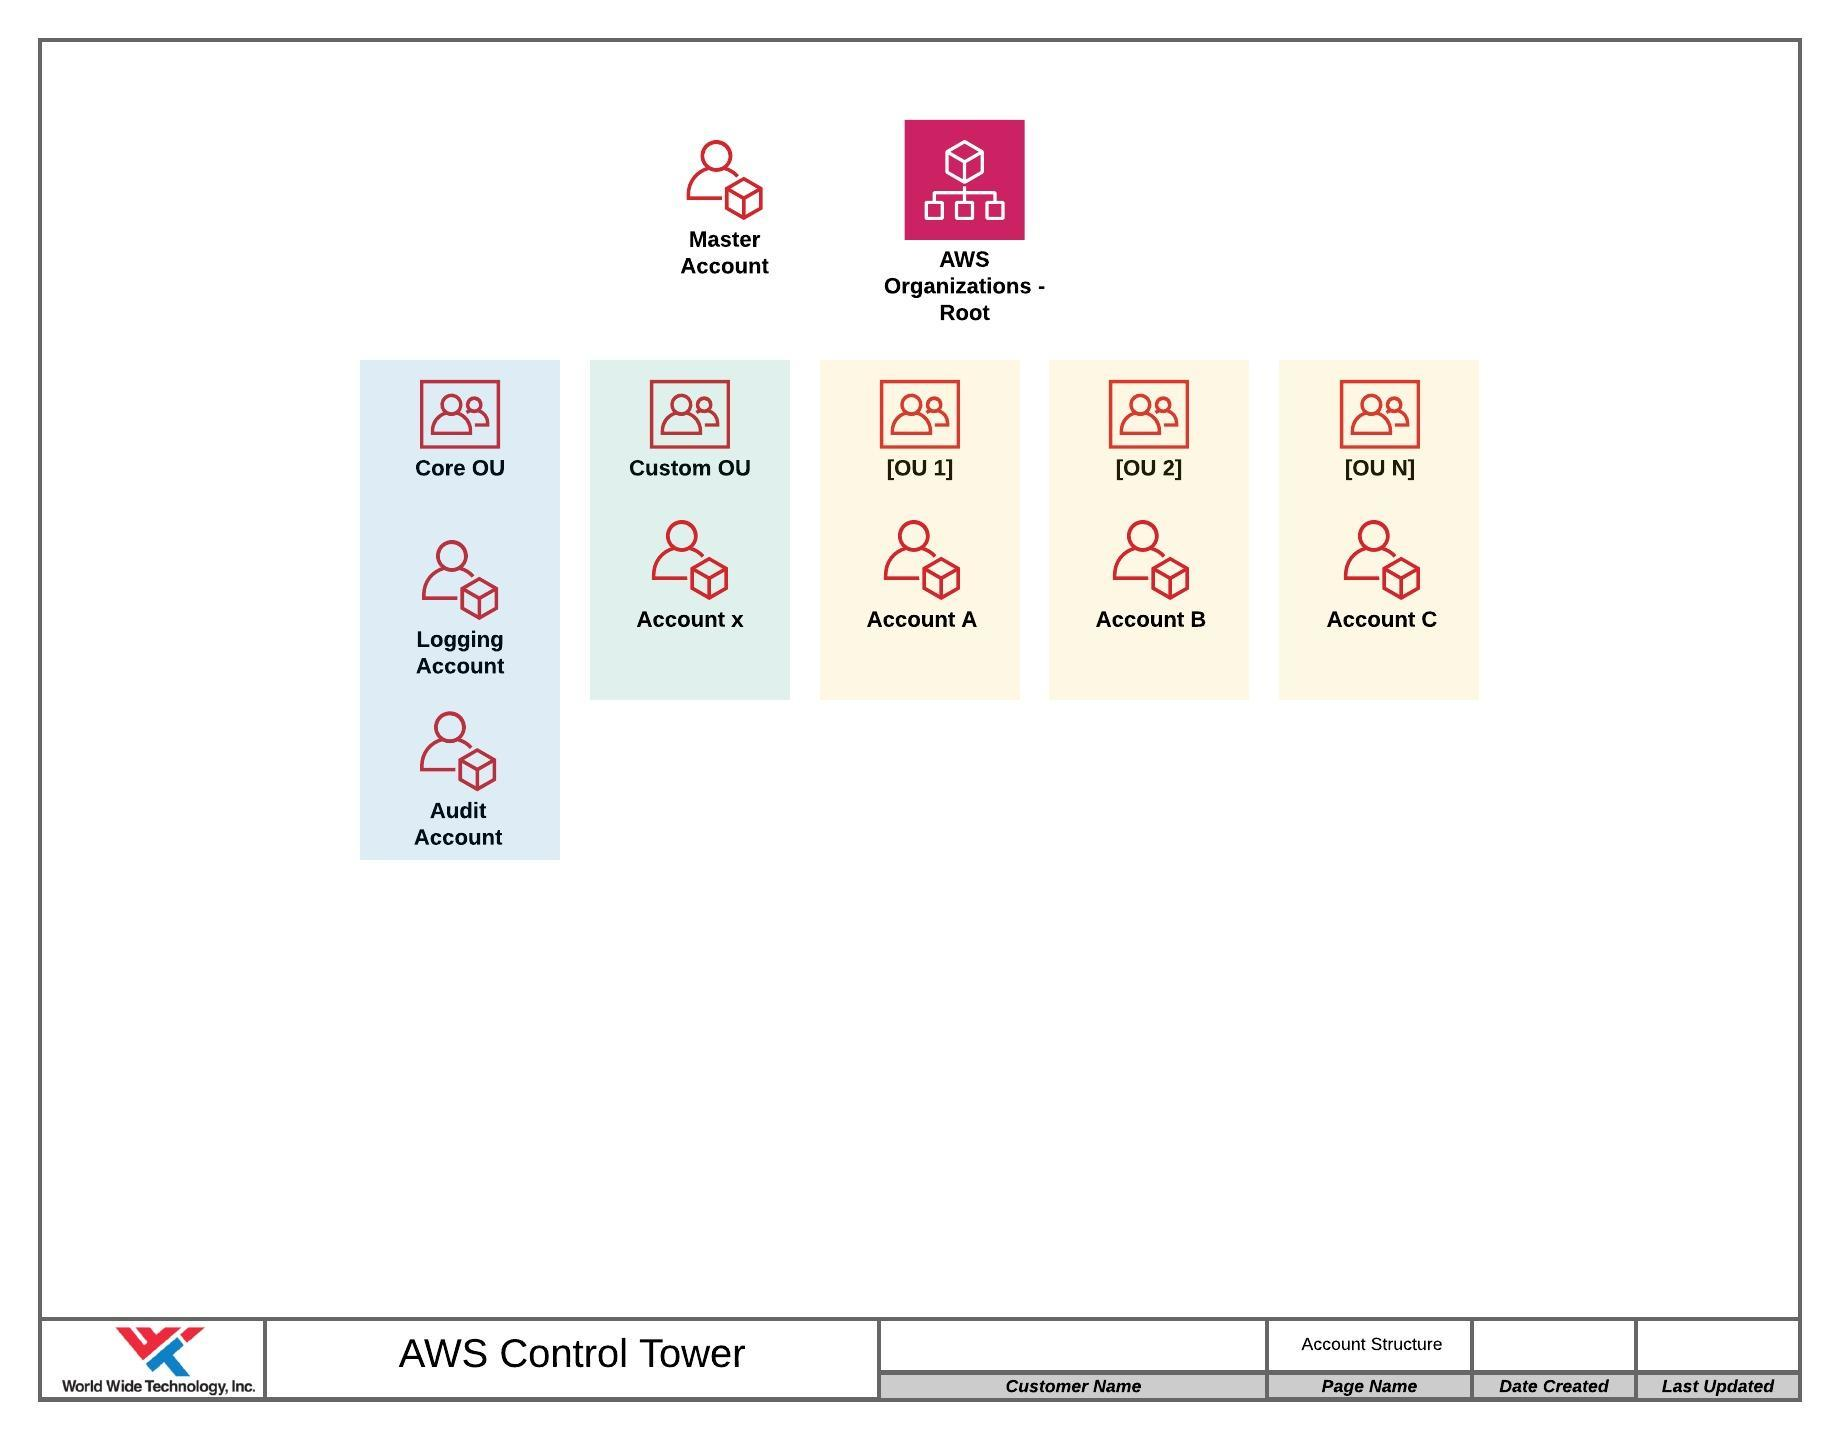 Diagram of AWS Control Tower master account